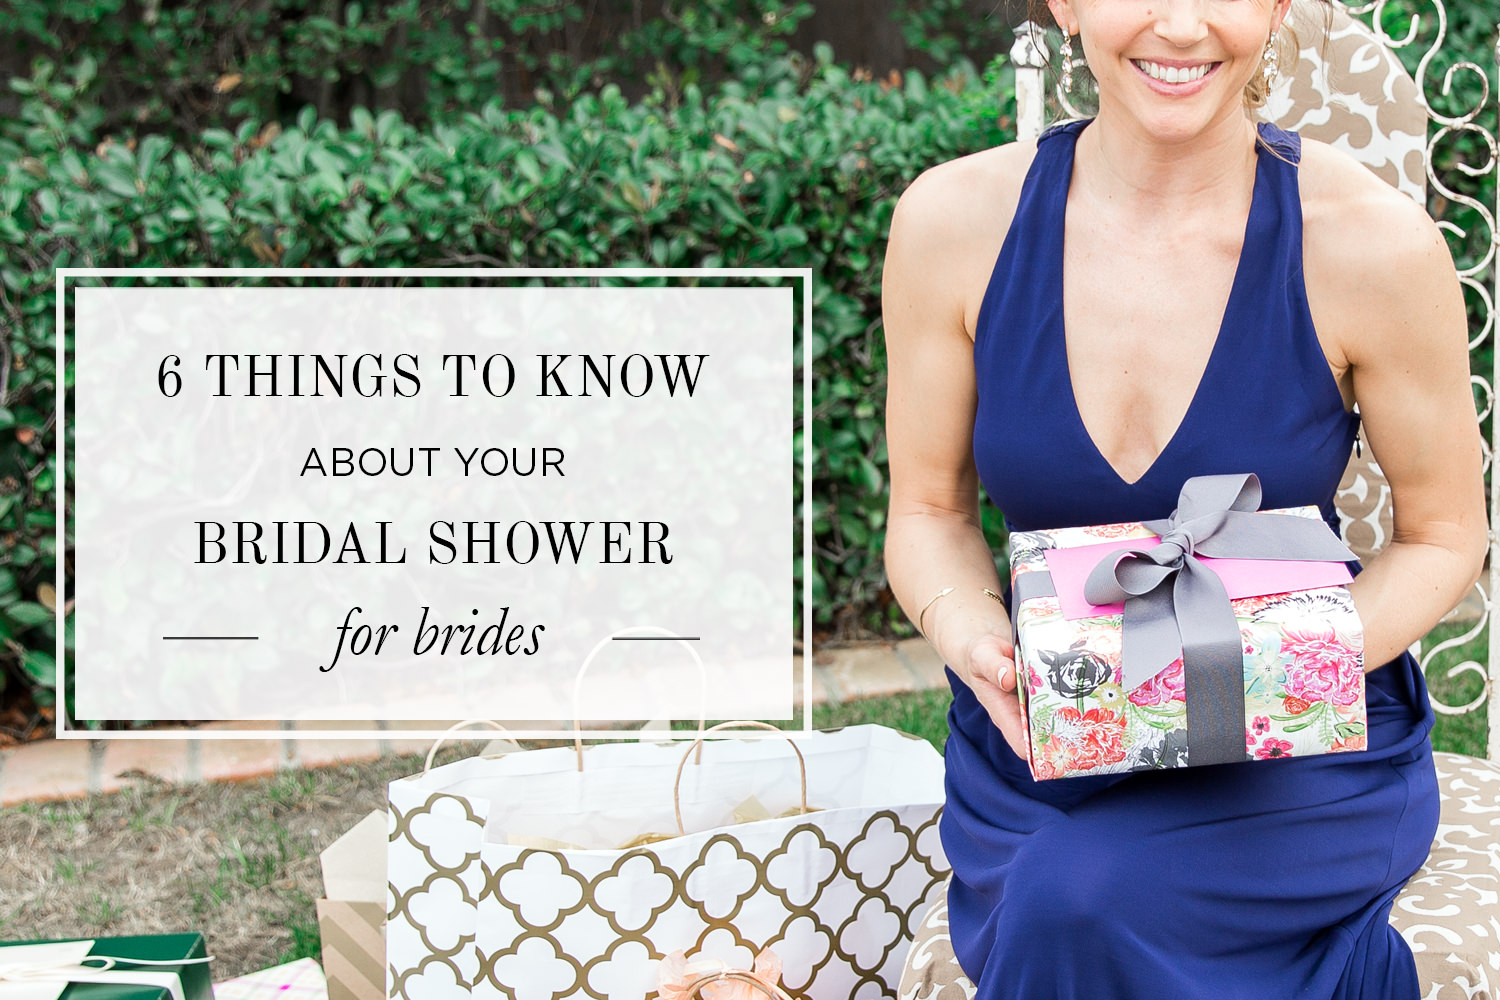 6 Things to Know about your bridal shower